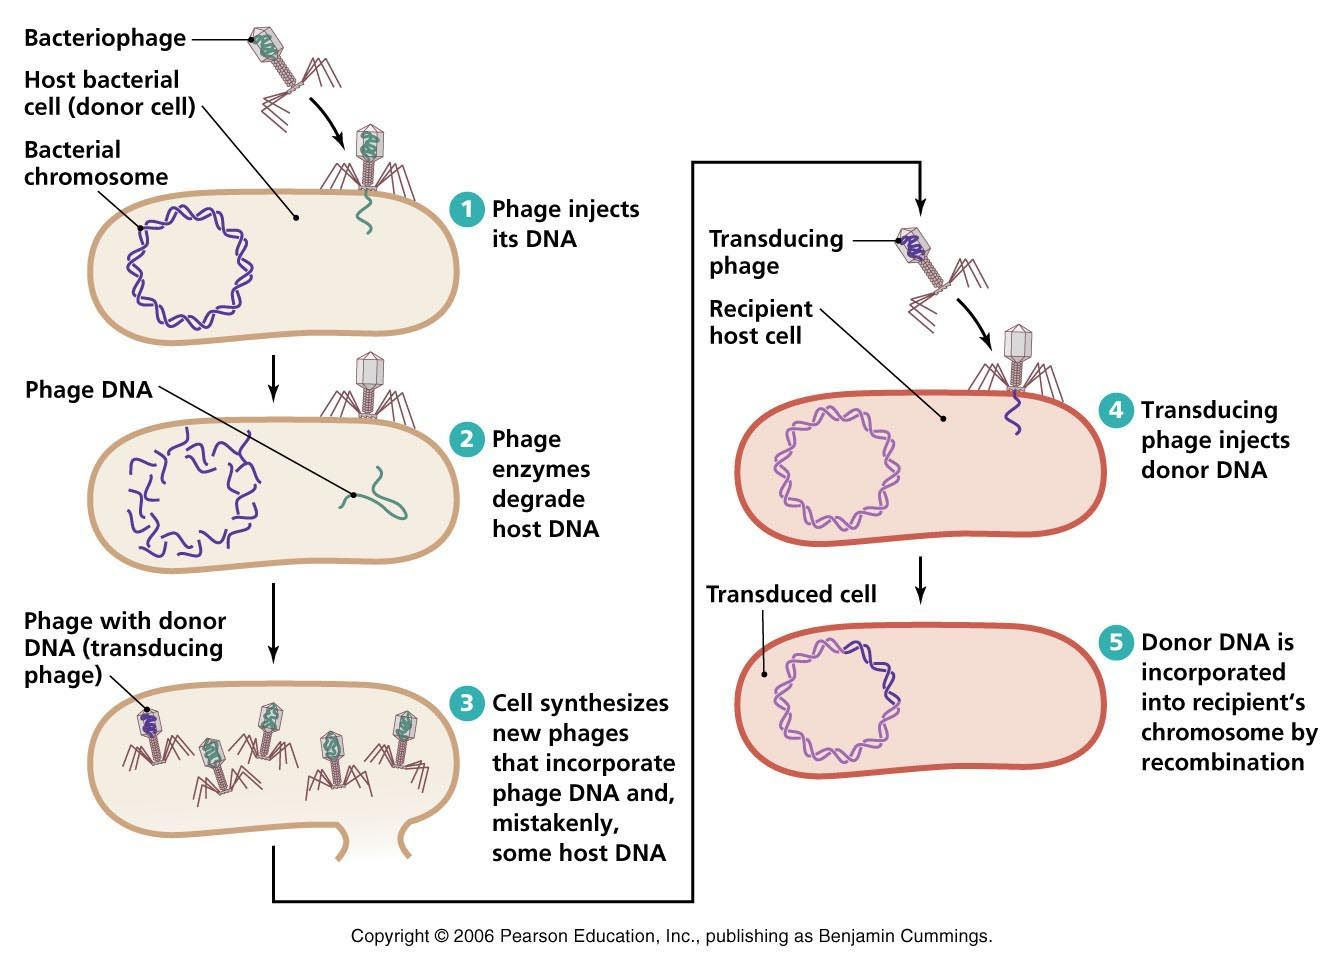 Biology Pictures Bacterial Transduction